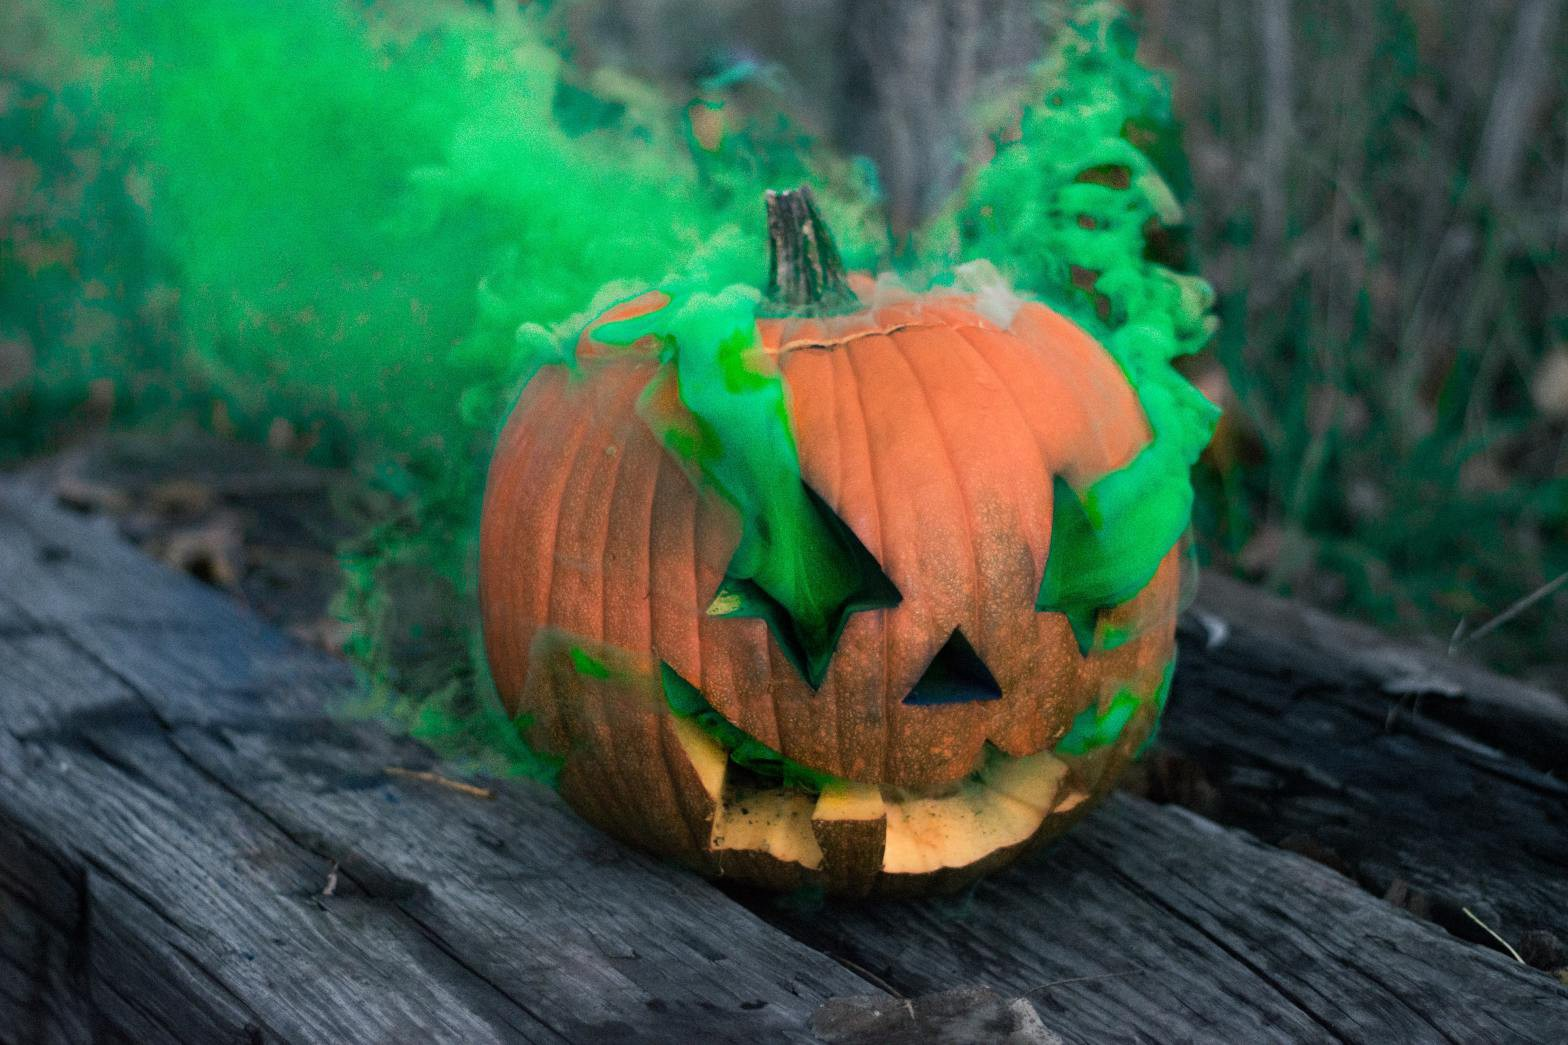 jack-o'-lantern with green smoke coming out of the eyes